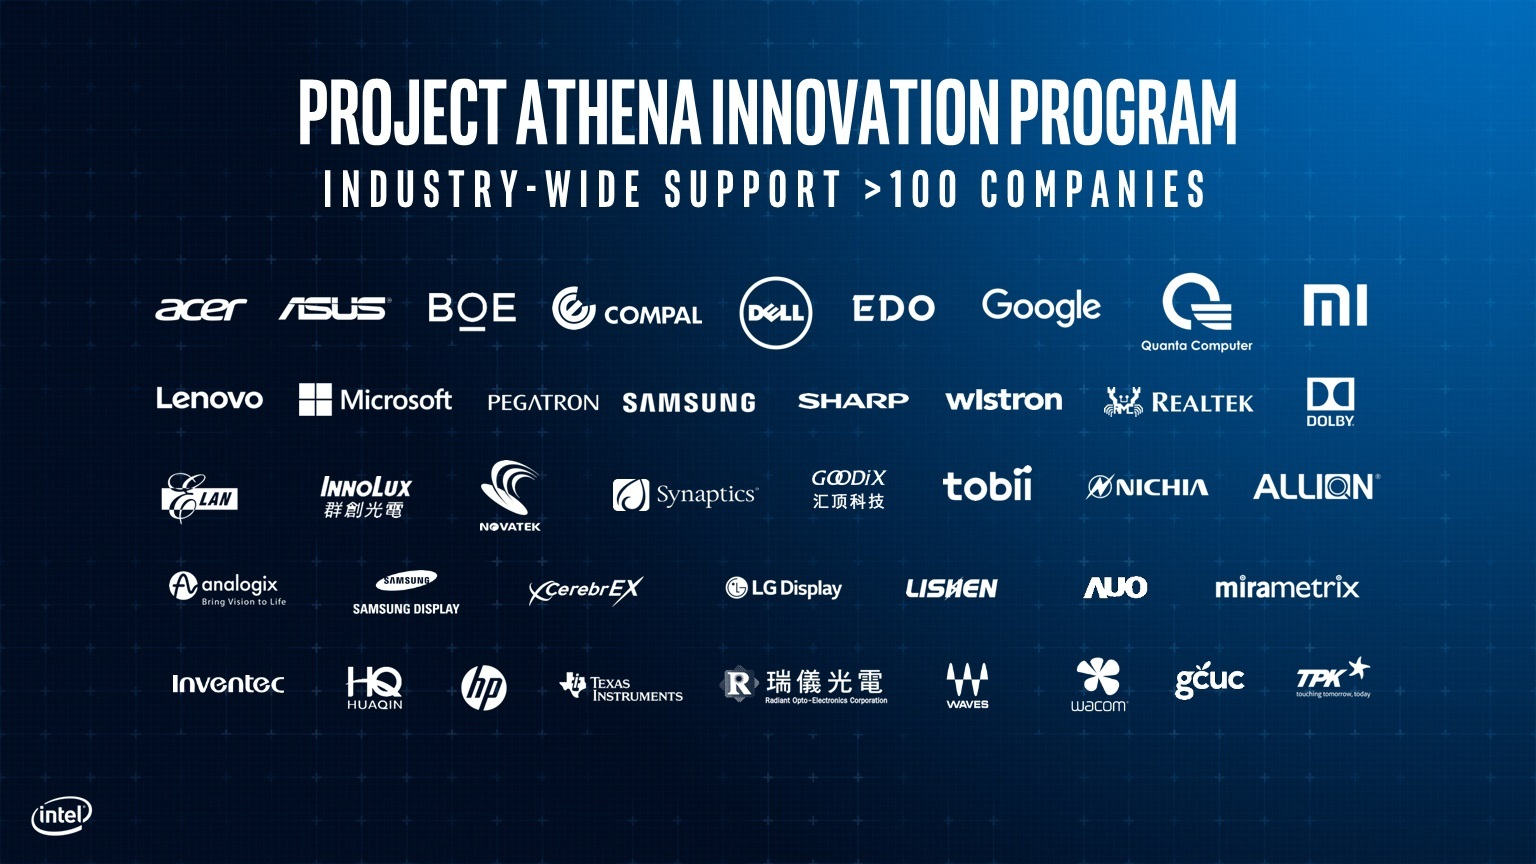 6Intel-Project-Athena-Innovation-Partners